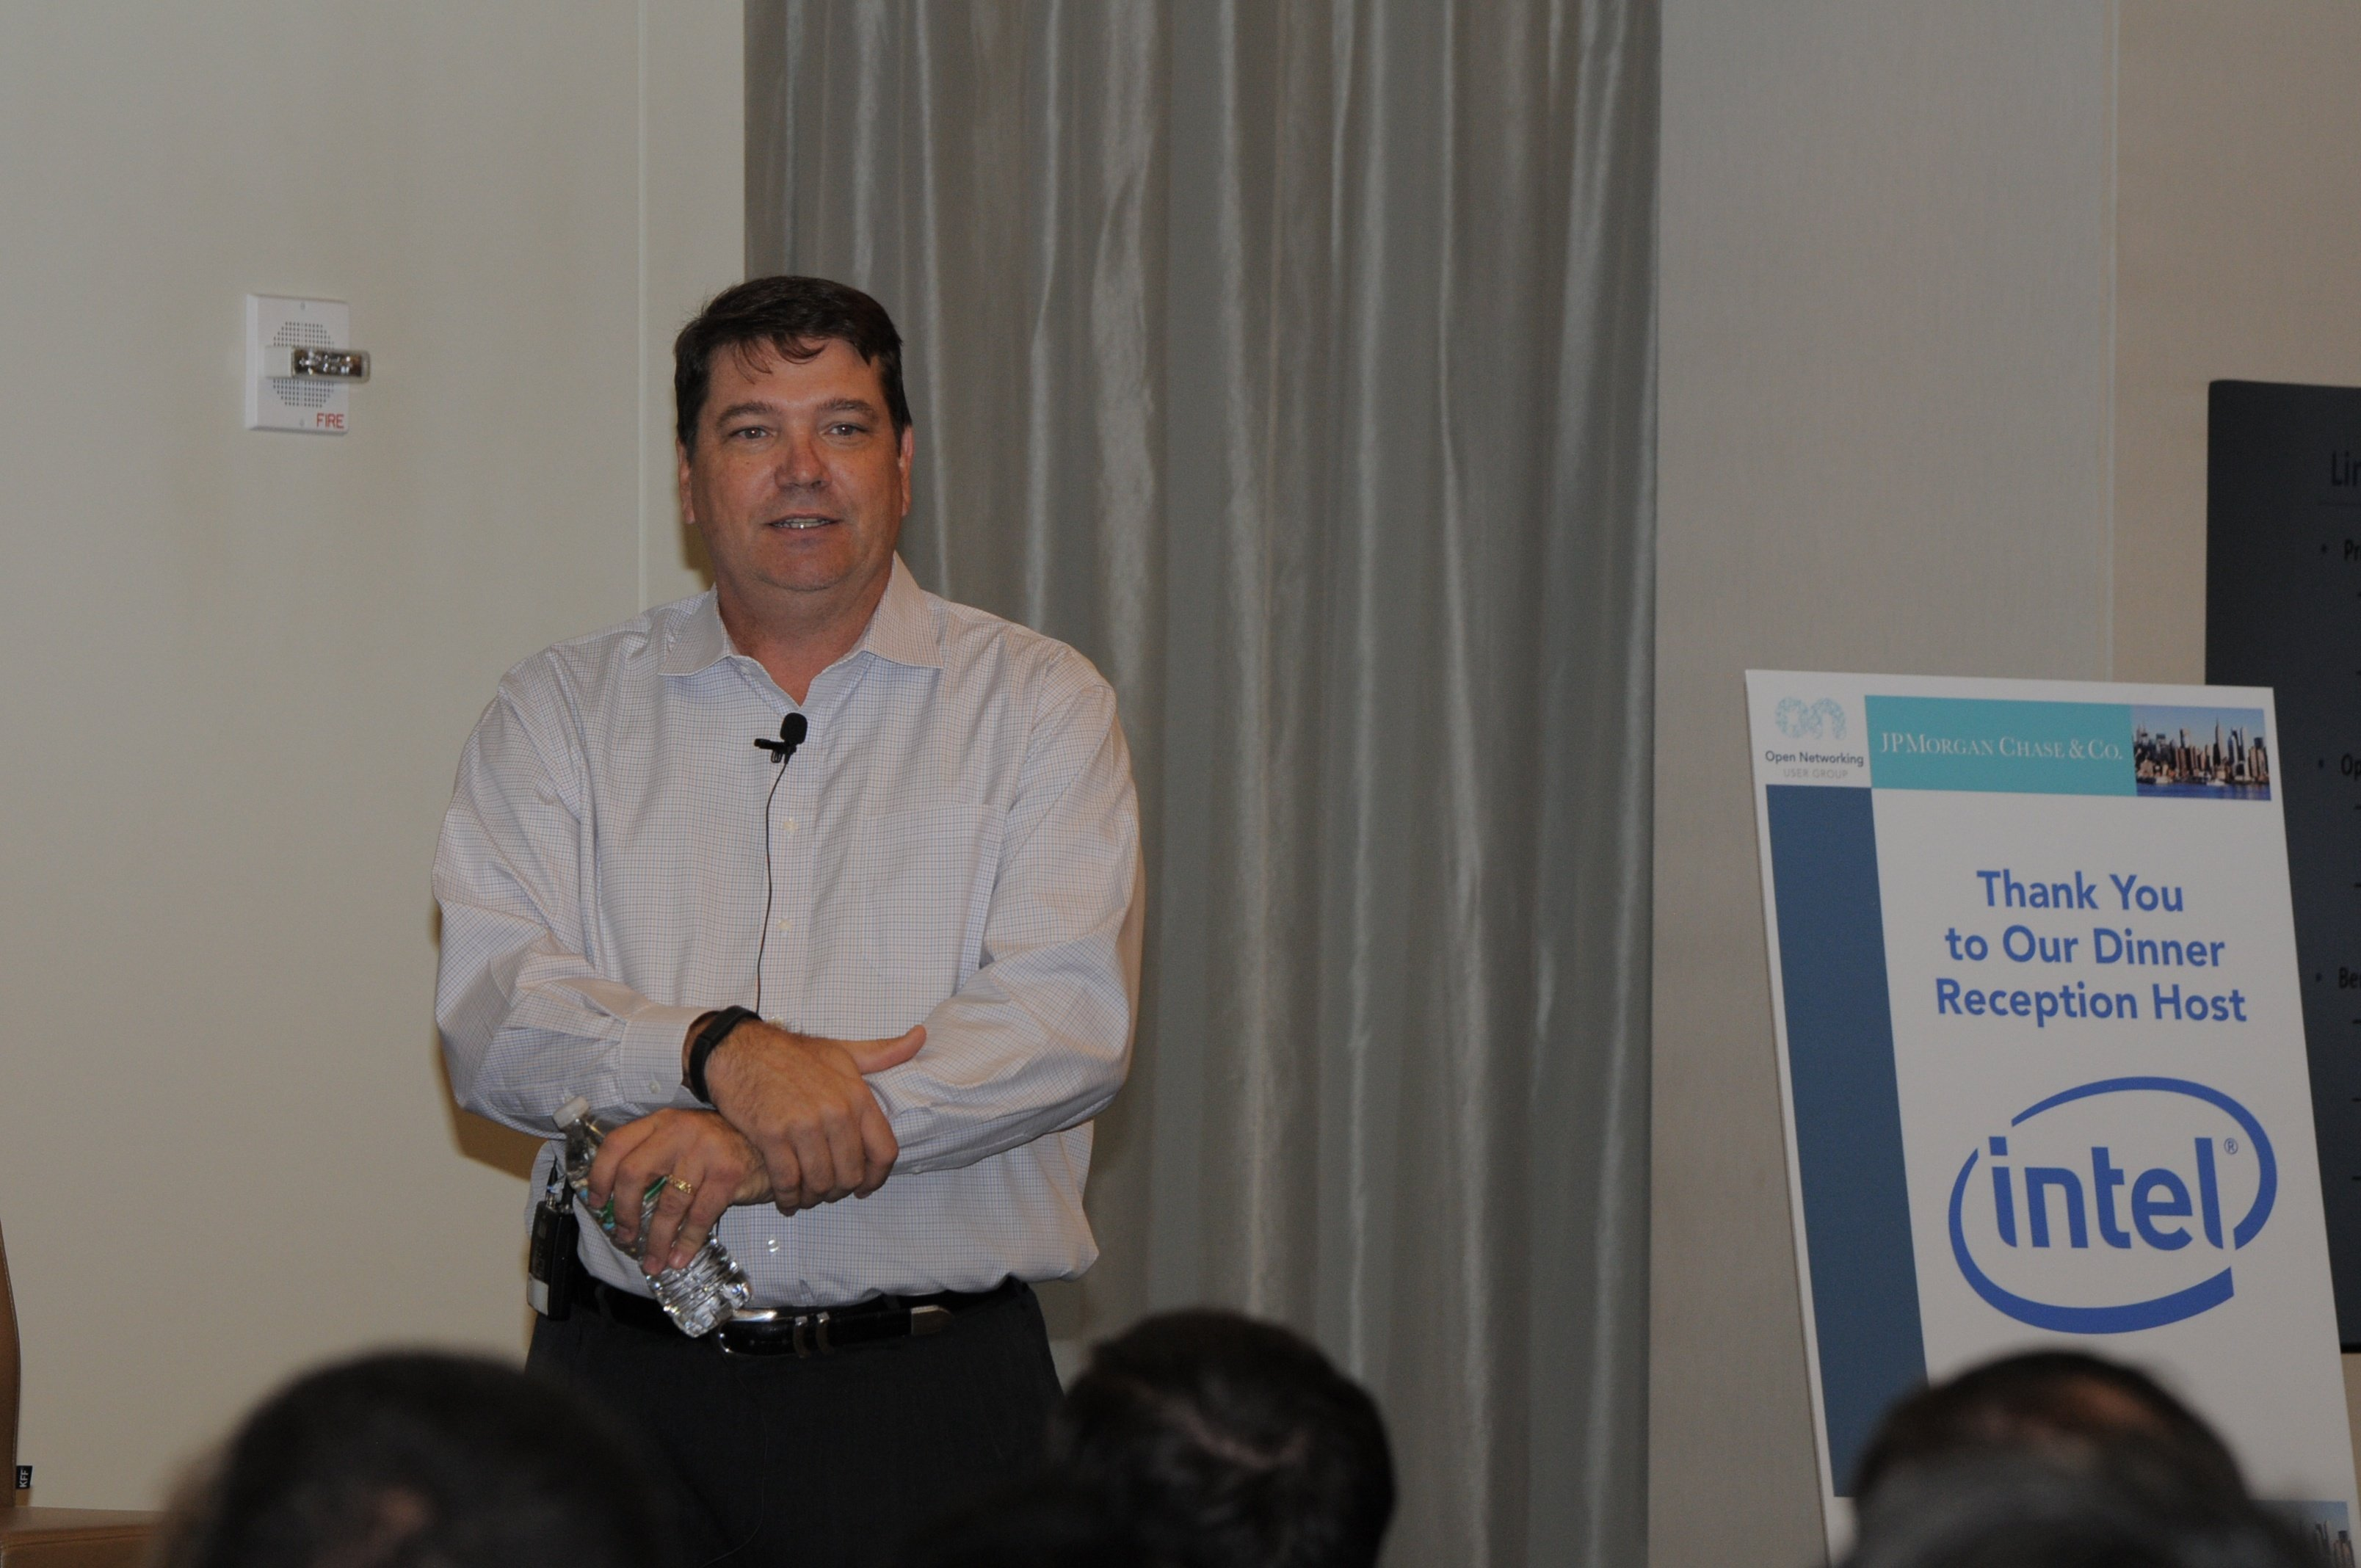 ONUG Board member, Keith Shinn, presents his use cases as a part of the ONUG Open Networking Industry Requirements panel